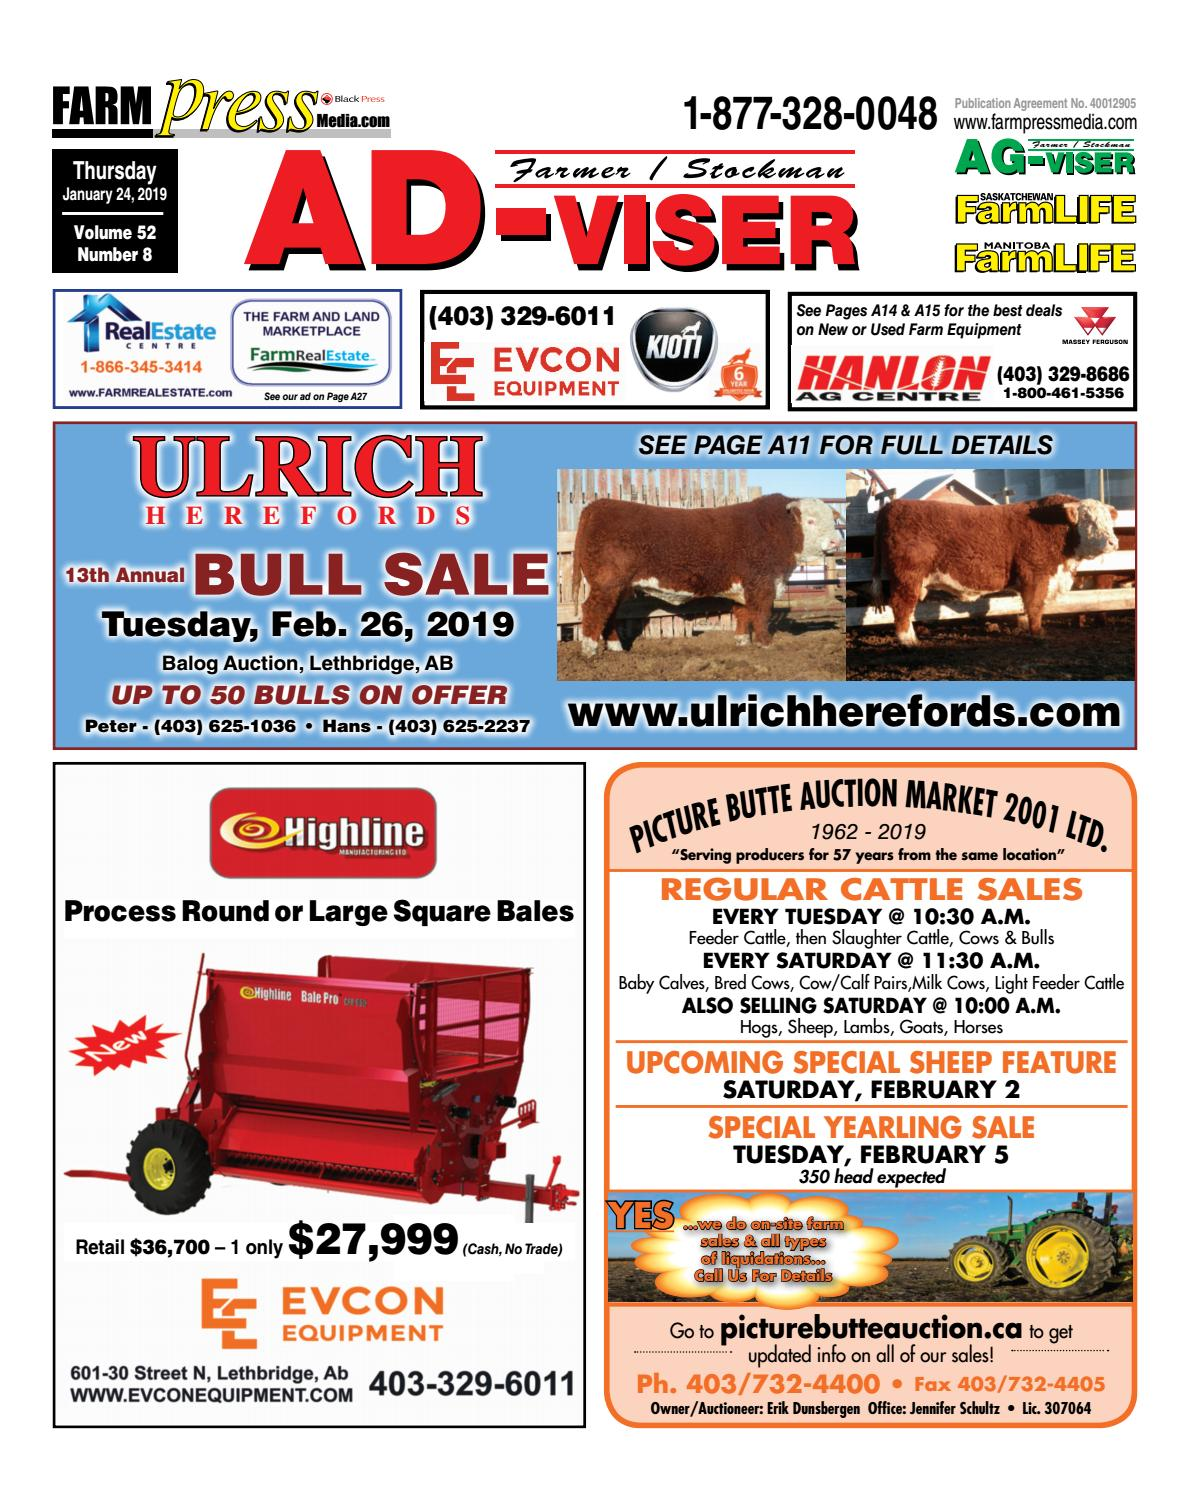 Farm Equipment For Sale In Alberta >> Southern Alberta Advisor, January 24, 2019 by Black Press Media Group - Issuu